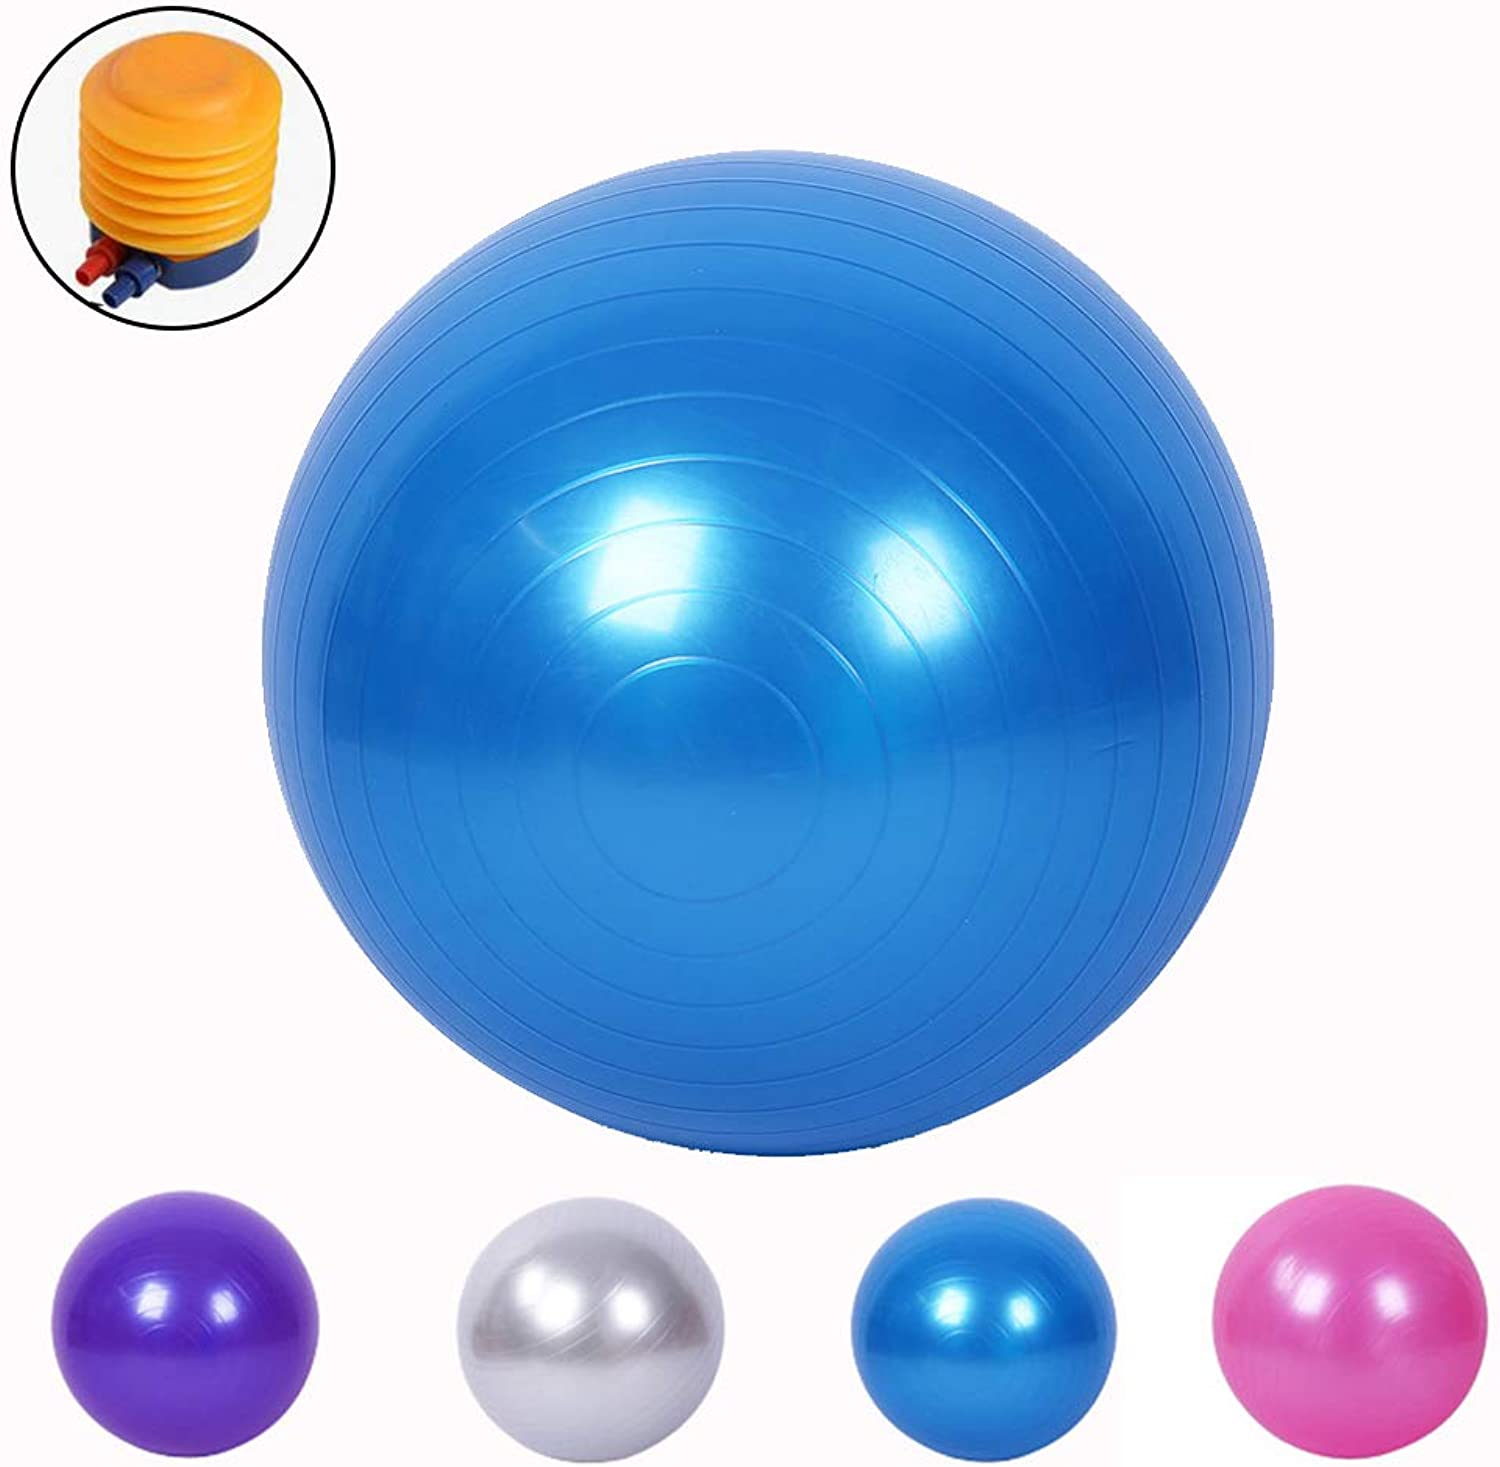 Exercise Ball, Gym Ball, AntiBurst & Extra Thick, Swiss Ball with Quick Pump, Birthing Ball for Yoga, Pilates, Fitness, Pregnancy & Labour